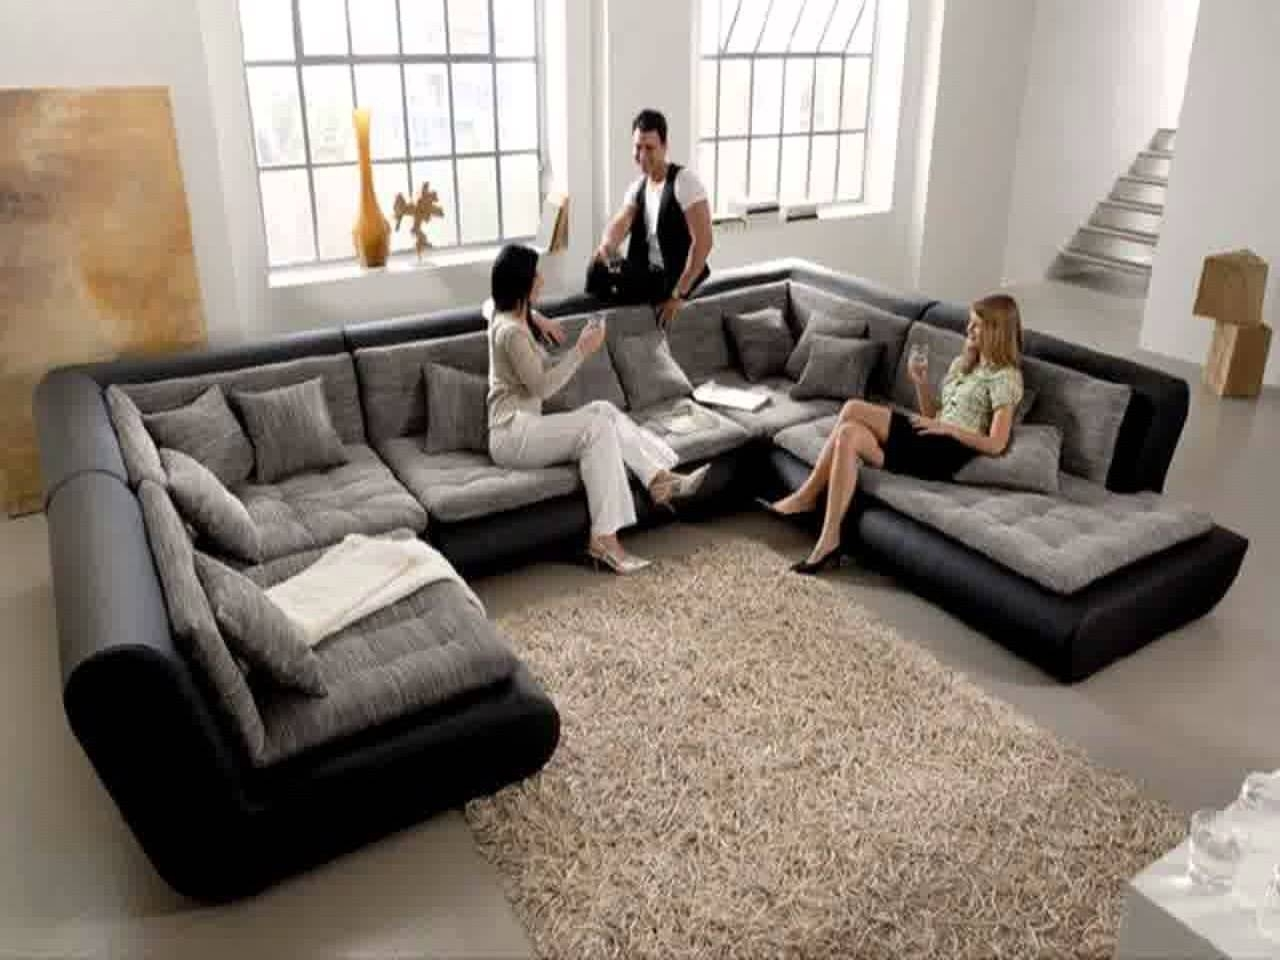 Sectional Sofas Bassett Youtube Best Sectional Sofa Brands | Freedom To Intended For Sectional Sofas At Bassett (View 3 of 10)